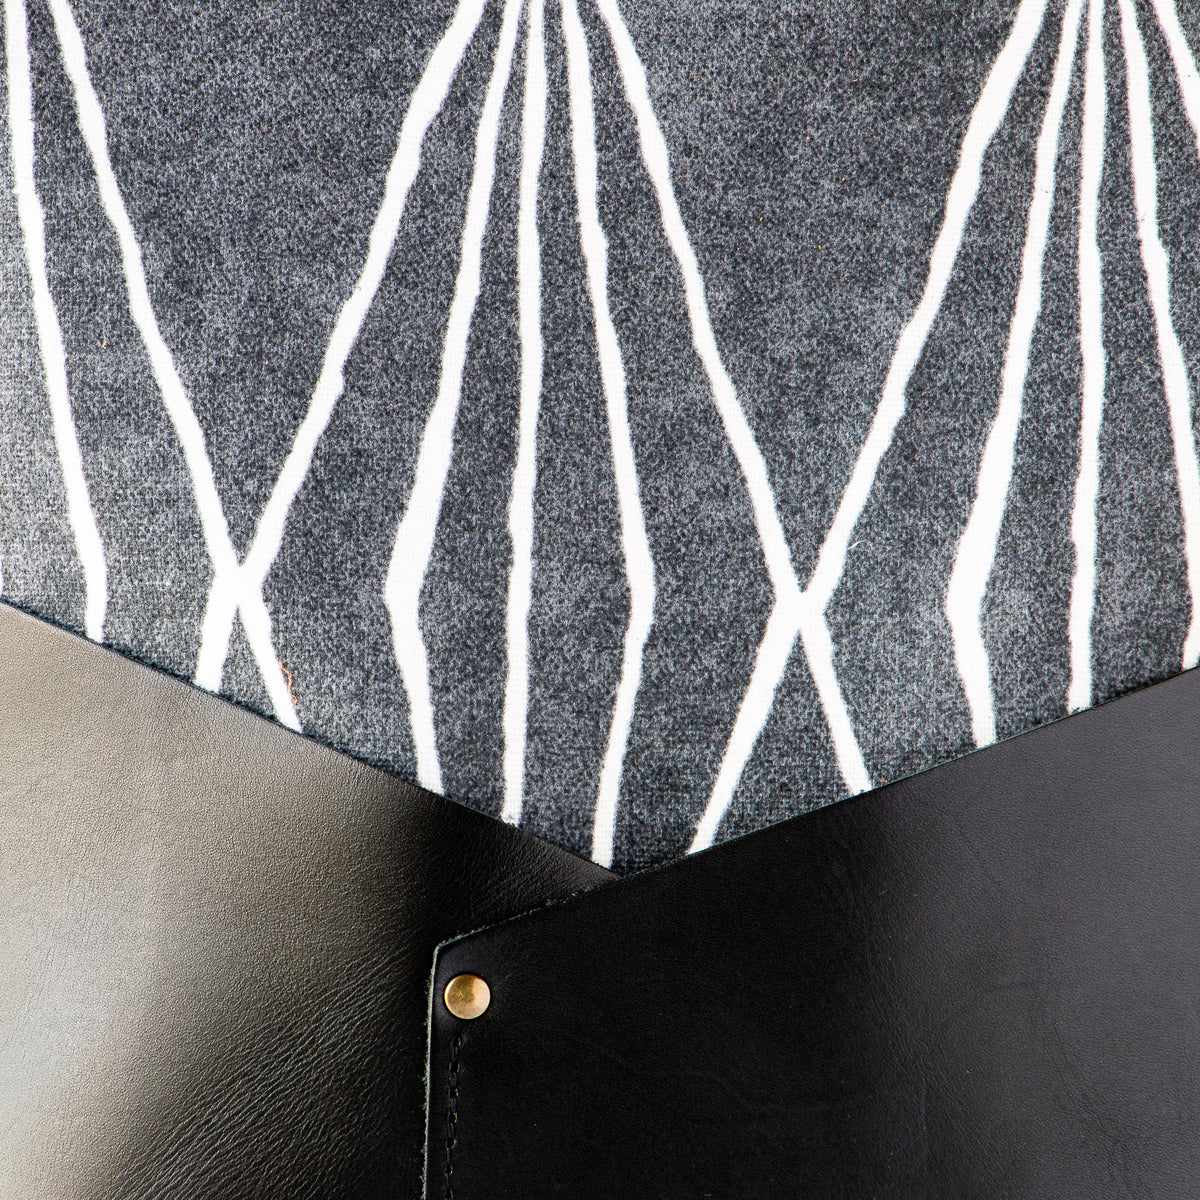 Fabric Detail - Handcrafted 13 Inch Laptop Backpack in Leather &  Charcoal Losange Fabric - Sold by Chic & Basta